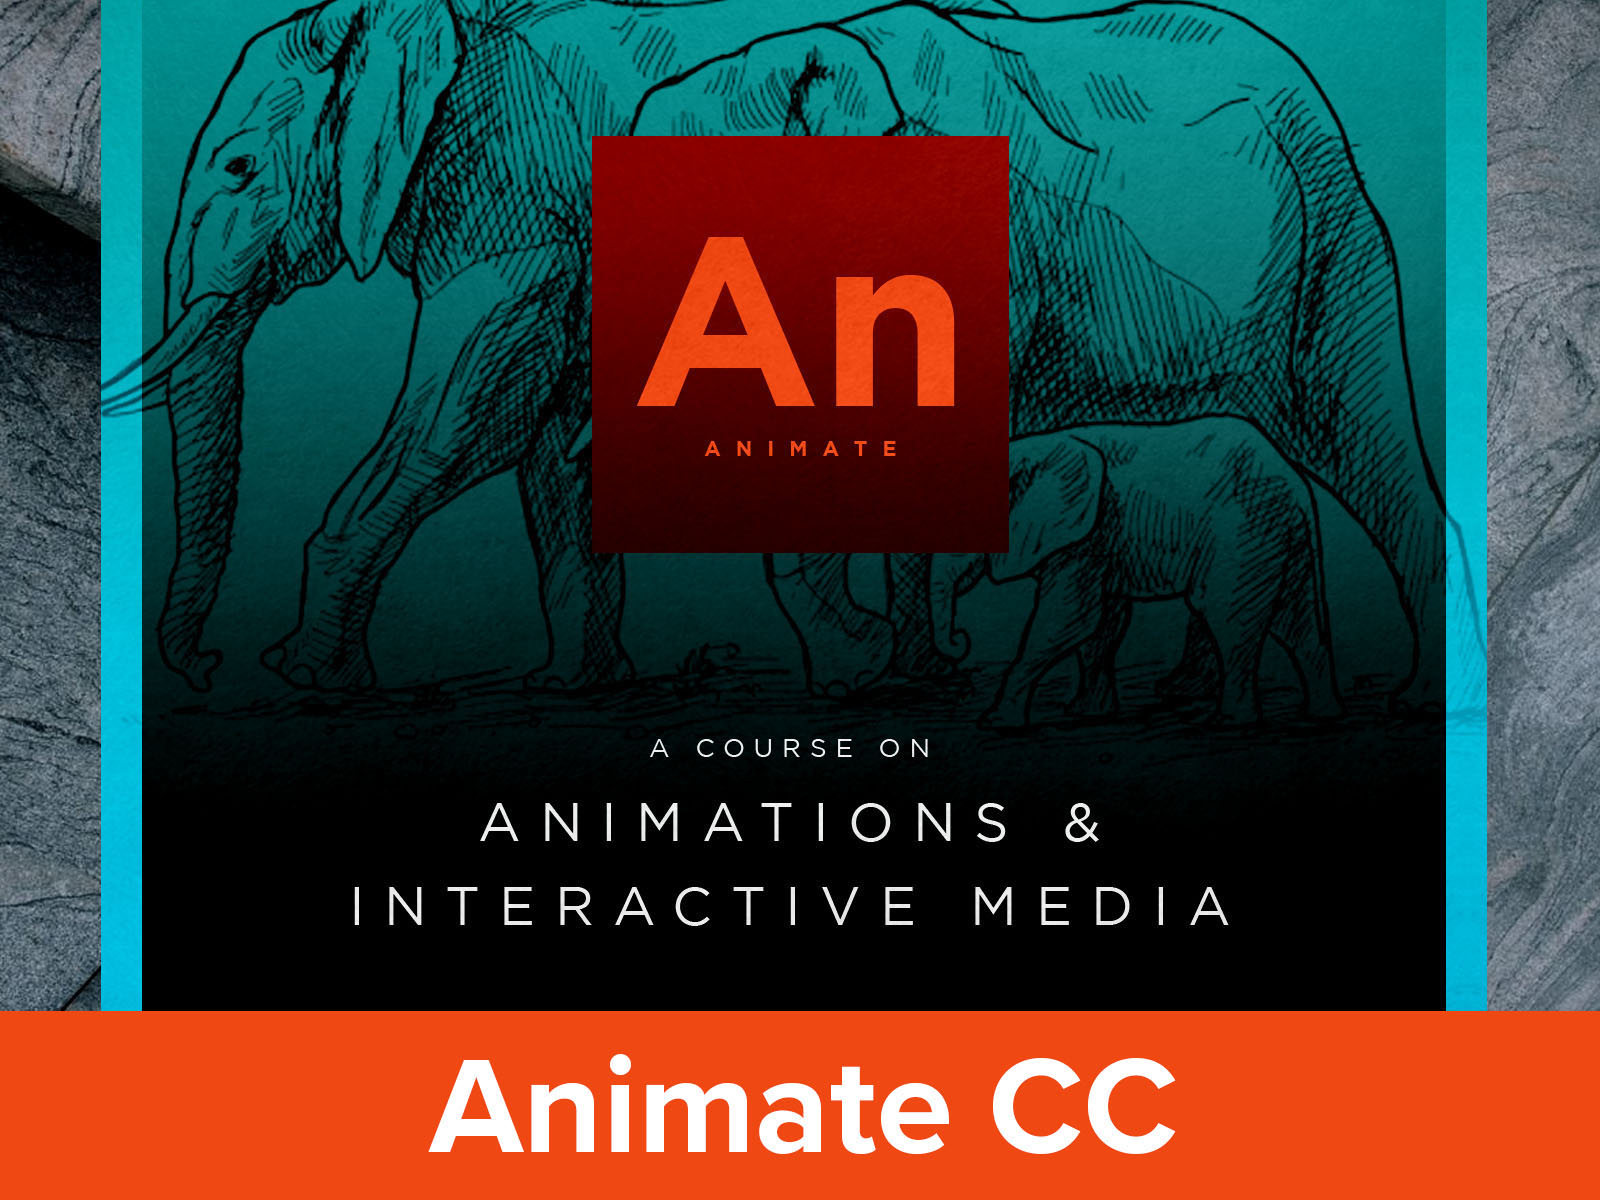 Adobe Animate CC18|19|20 course image